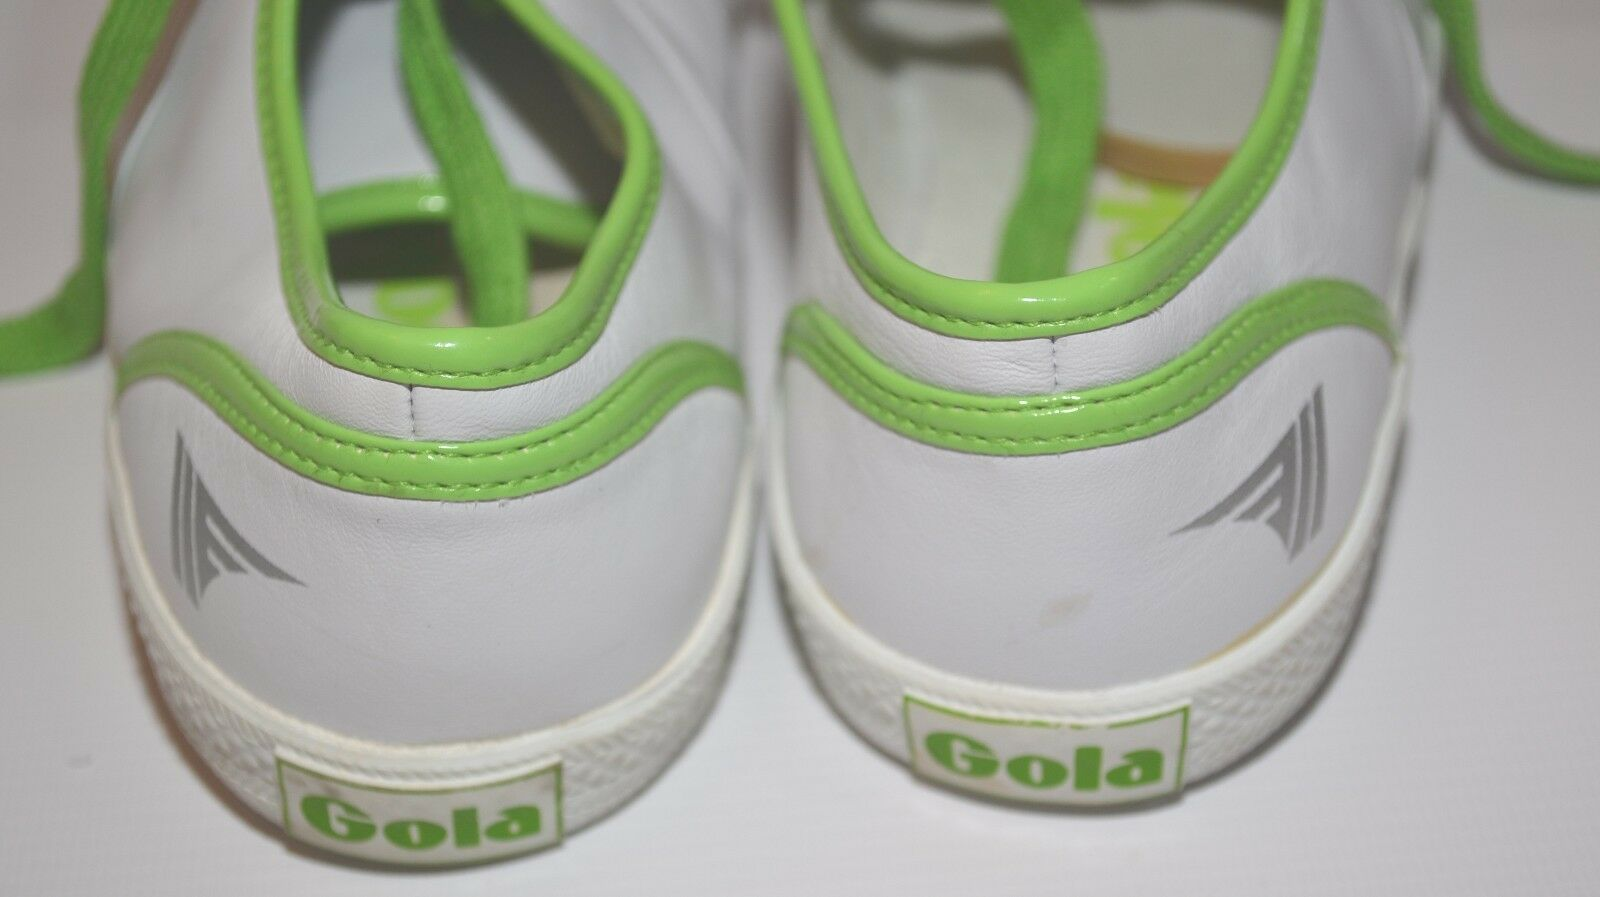 WHITE LEATHER / GREEN LACE-UP GOLA UK SNEAKER TRAINER TENNIS SHOE UK GOLA 4 US 6 EURO 37 6aa5c7